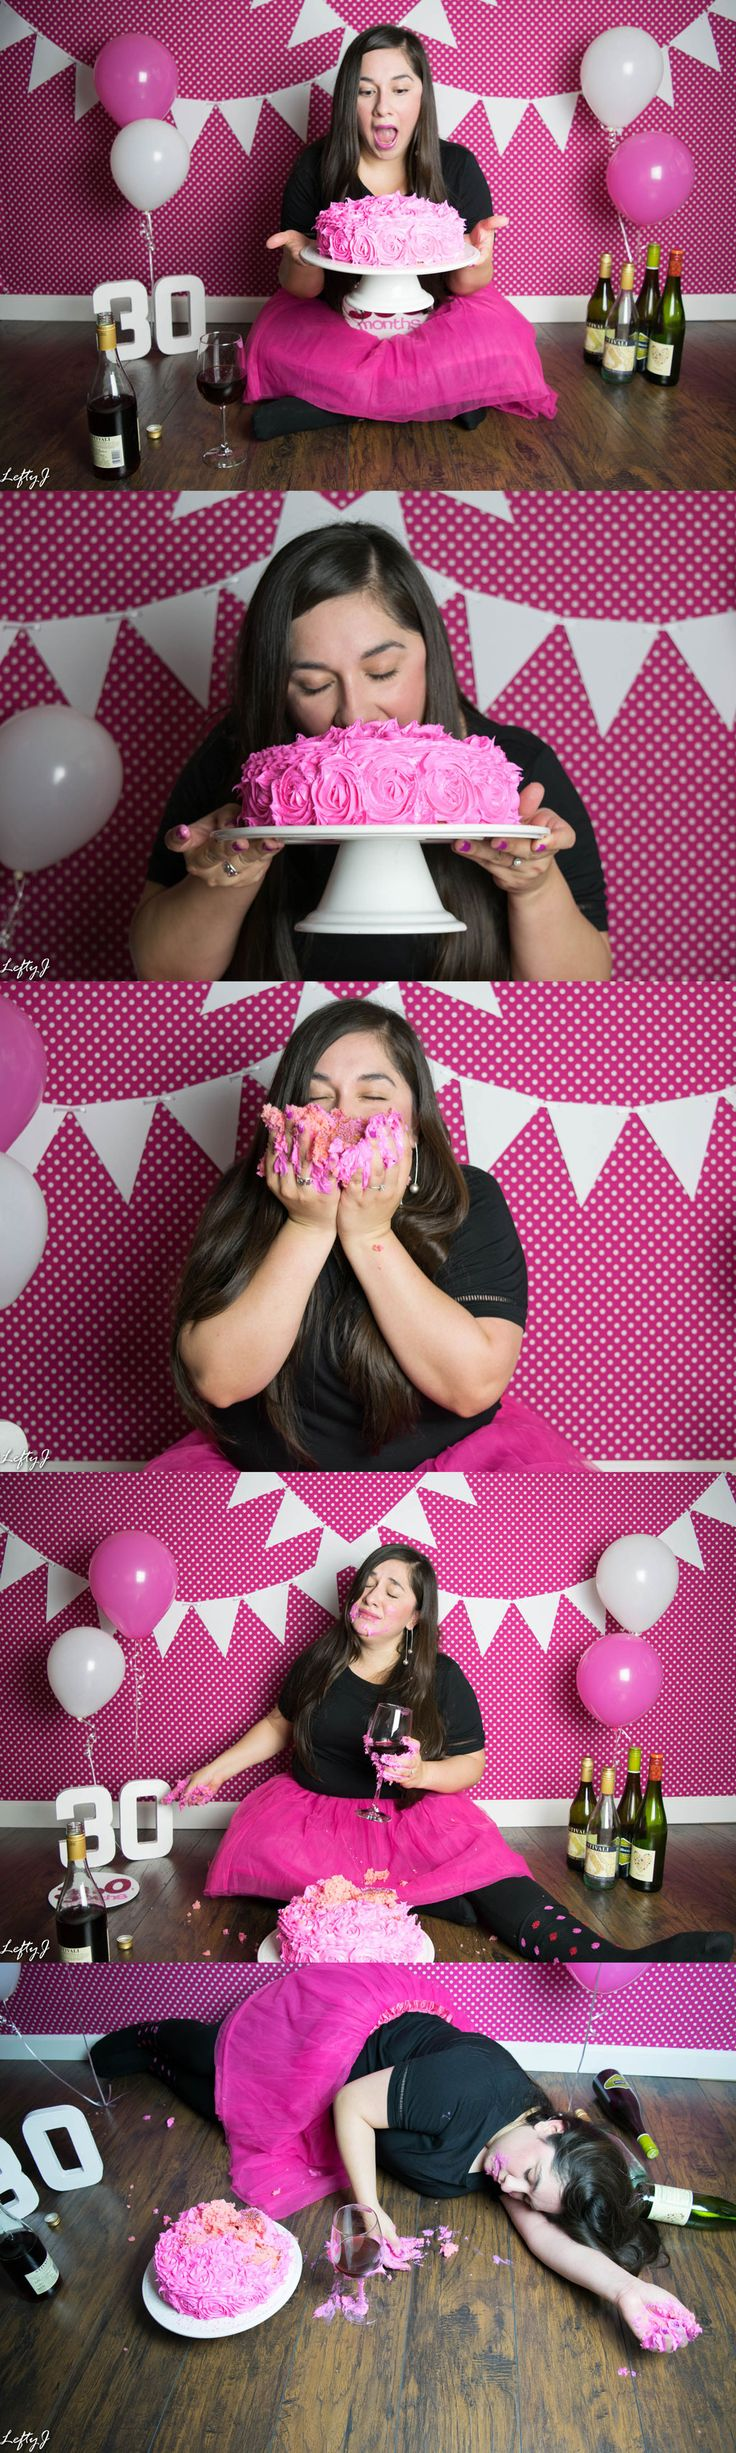 30th birthday adult smash cake photoshoot for @brendap361 by Lefty J Photography in Corpus Christi, TX.  #corpuschristiphotographer #corpuschristiphotography #smashcake #birthday #happybirthday #30 #30th #30thbirthday #30thbday #adultsmashcake #dirtythirty #dirty30